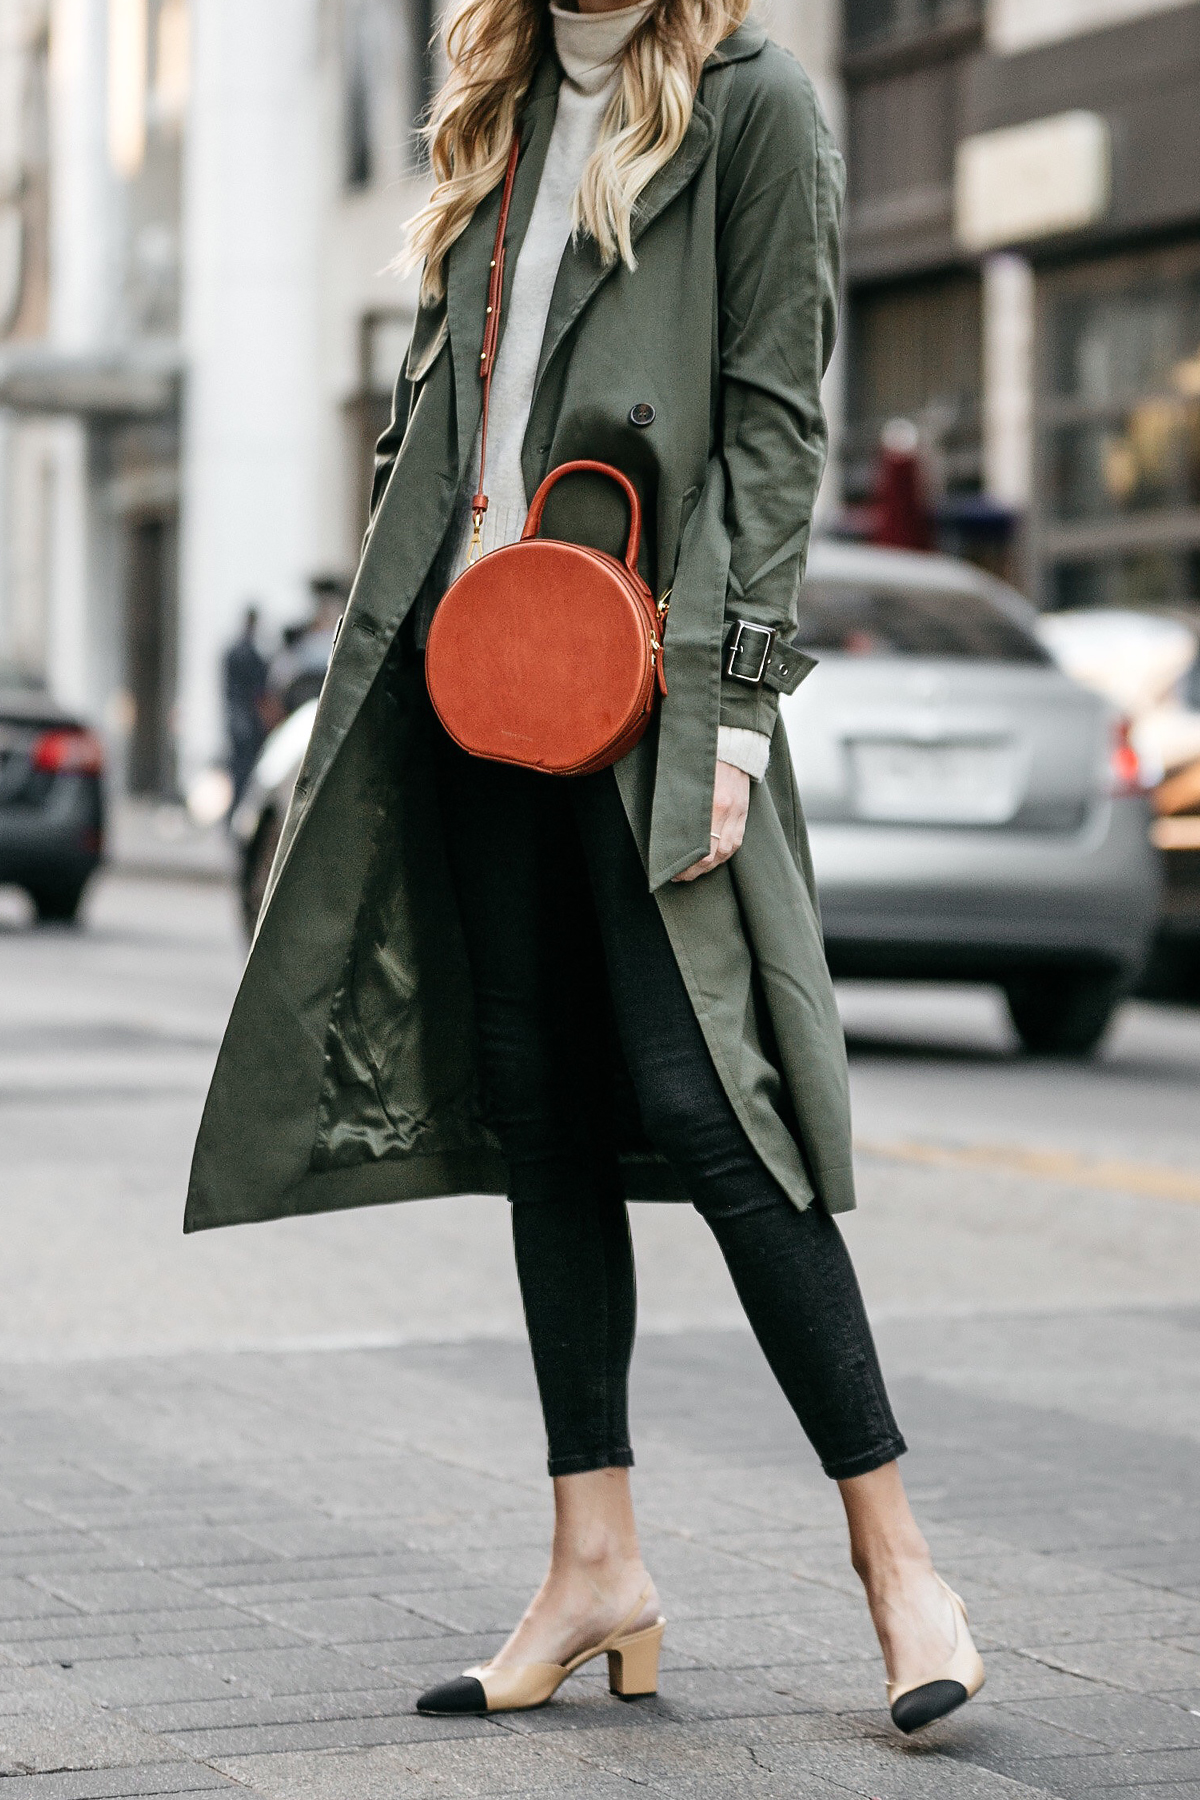 Green Trench Coat White Sweater Black Skinny Jeans Chanel Slingbacks Mansur Gavriel Circle Crossbody Fashion Jackson Dallas Blogger Fashion Blogger Street Style